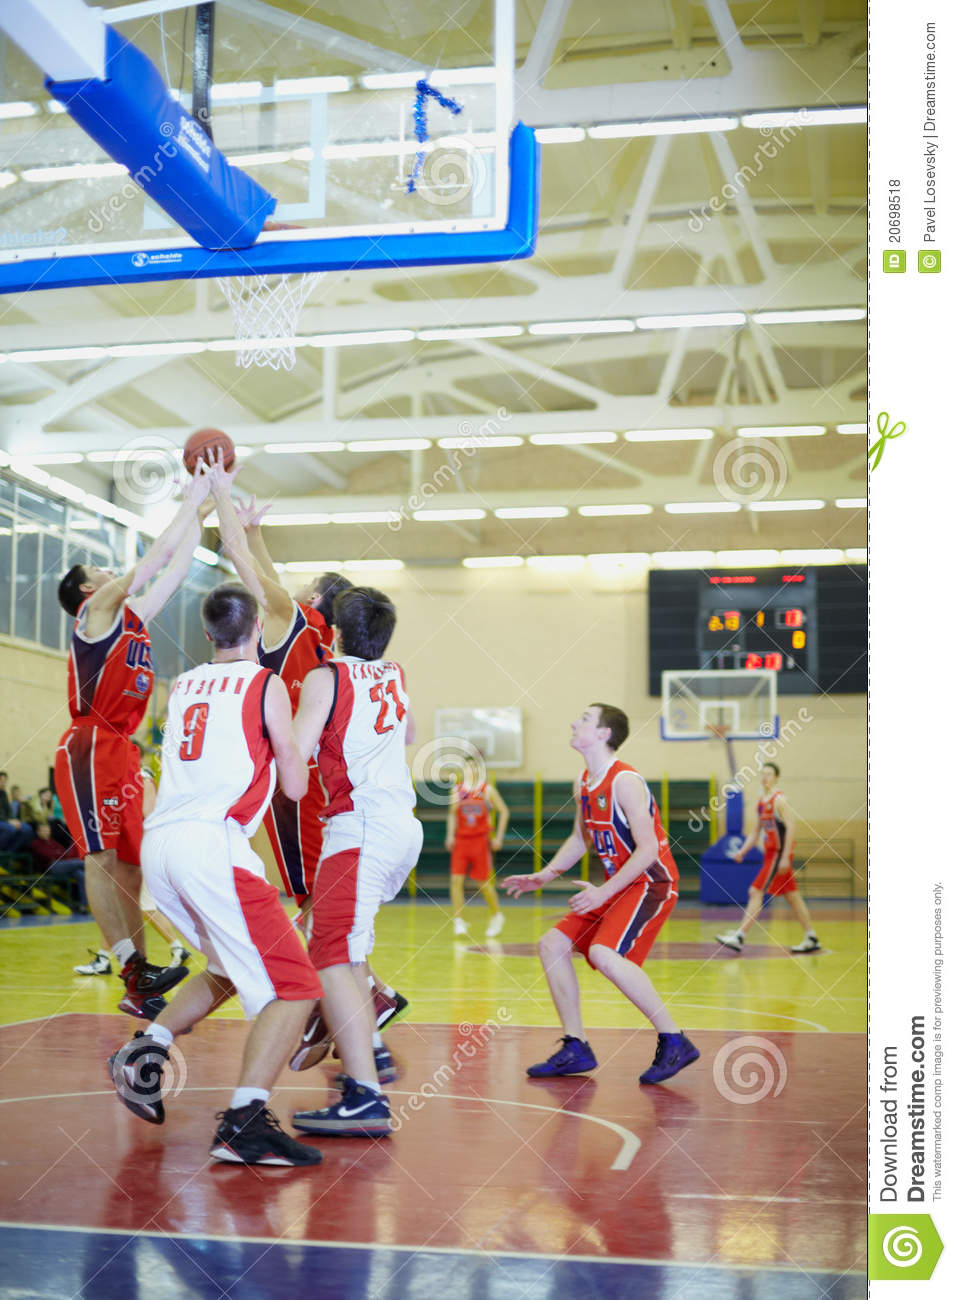 Moment intense dans le match de basket